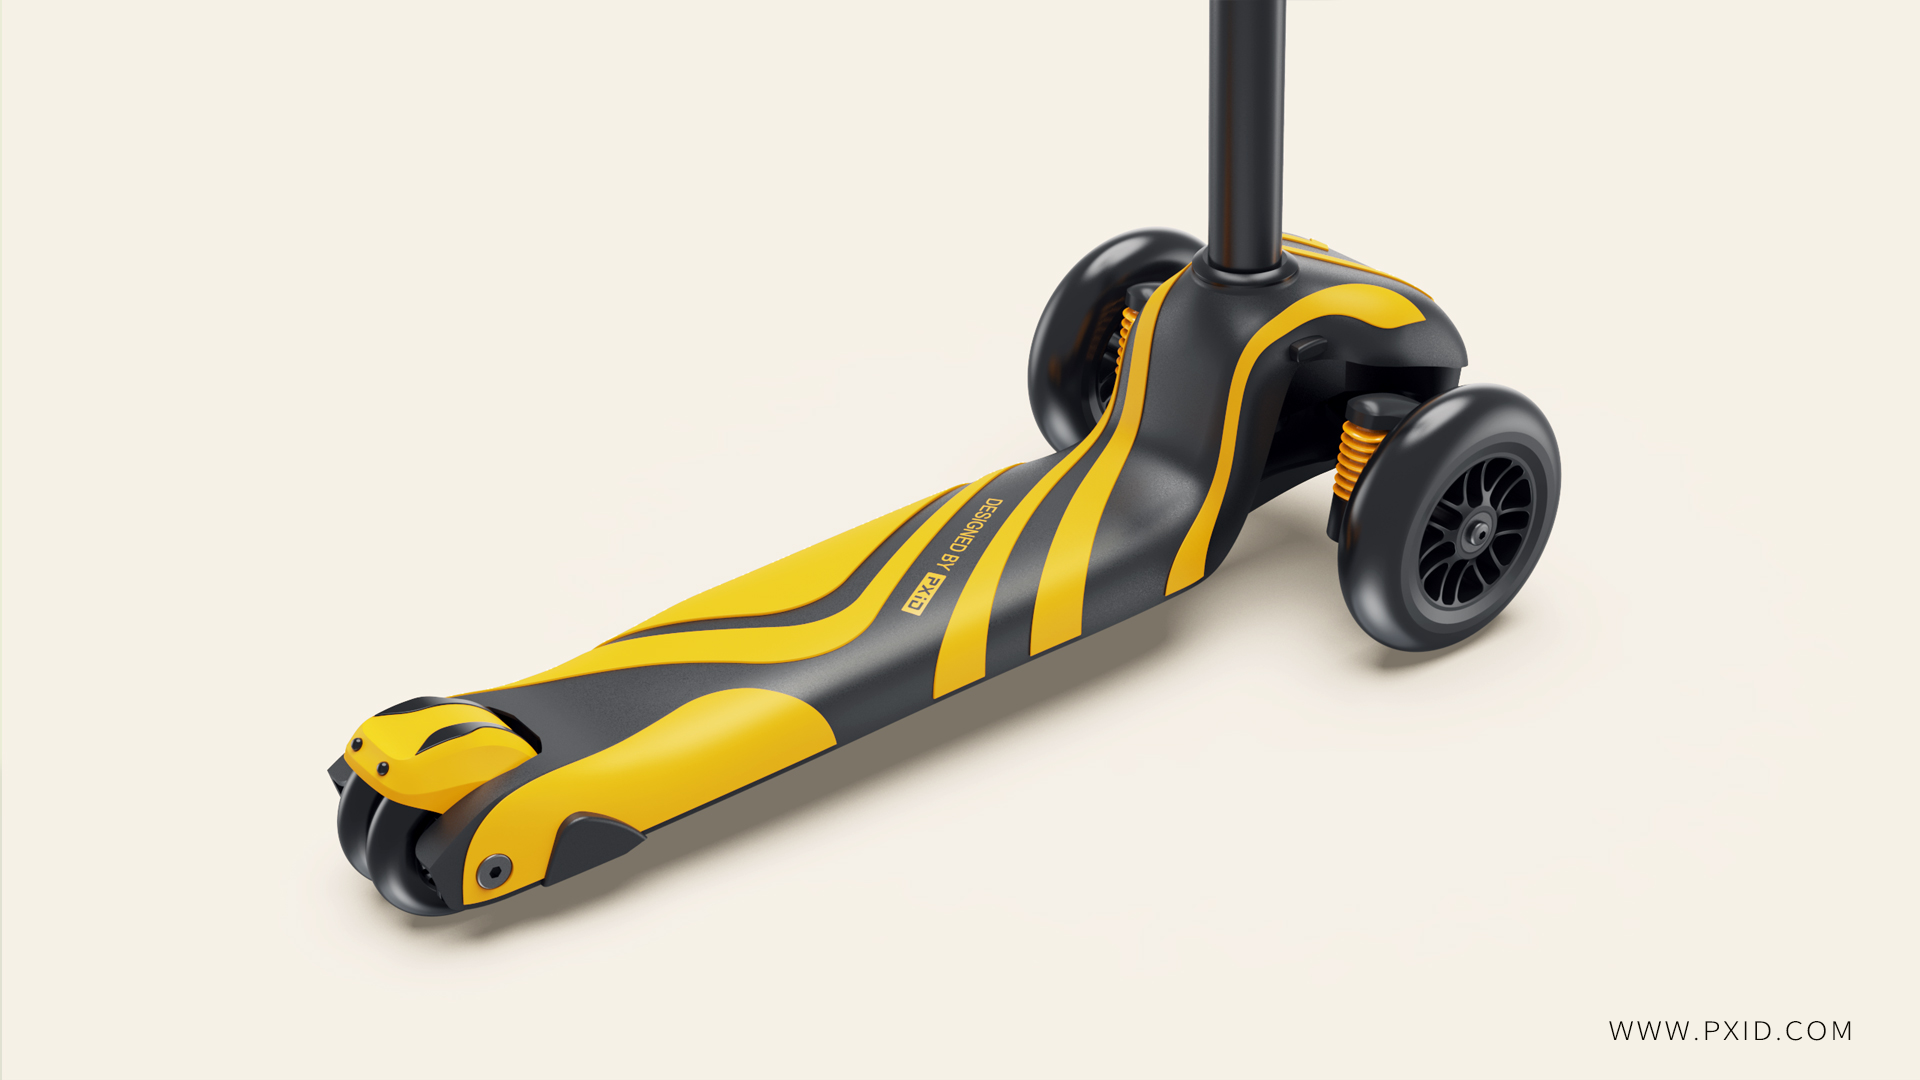 Design of children's scooter with both beauty and strength